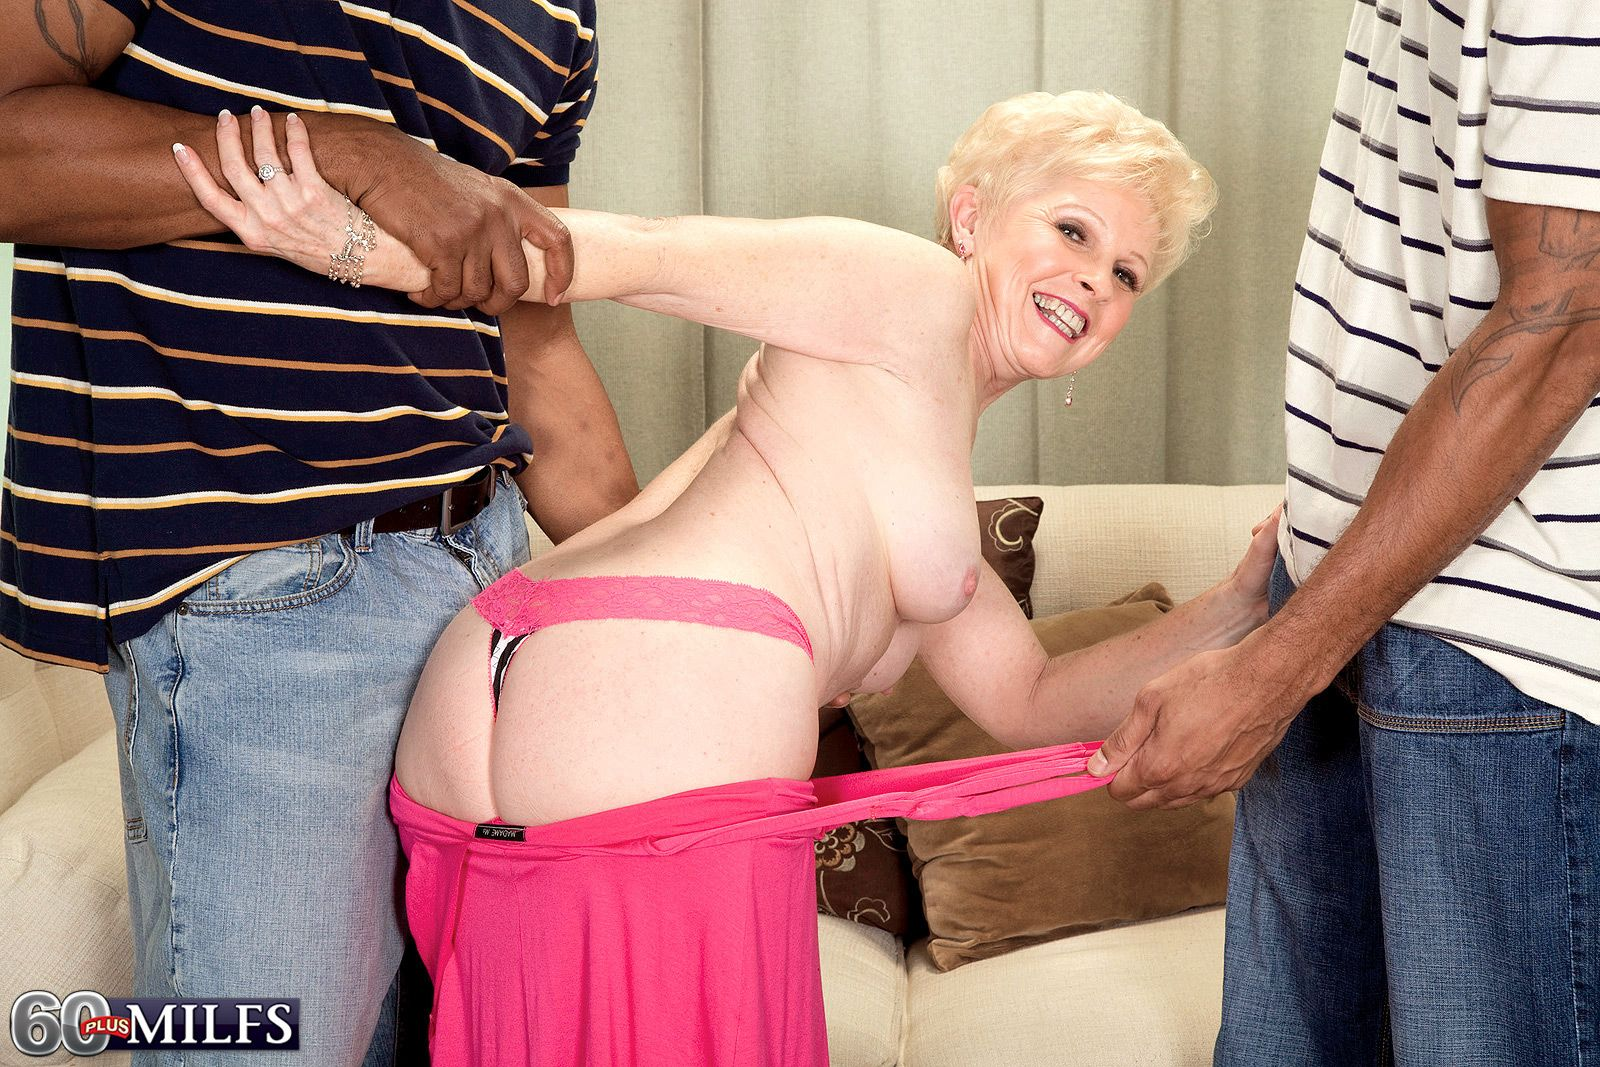 Short haired 60+ MILF Jewel baring tits and ass before interracial MMF 3some